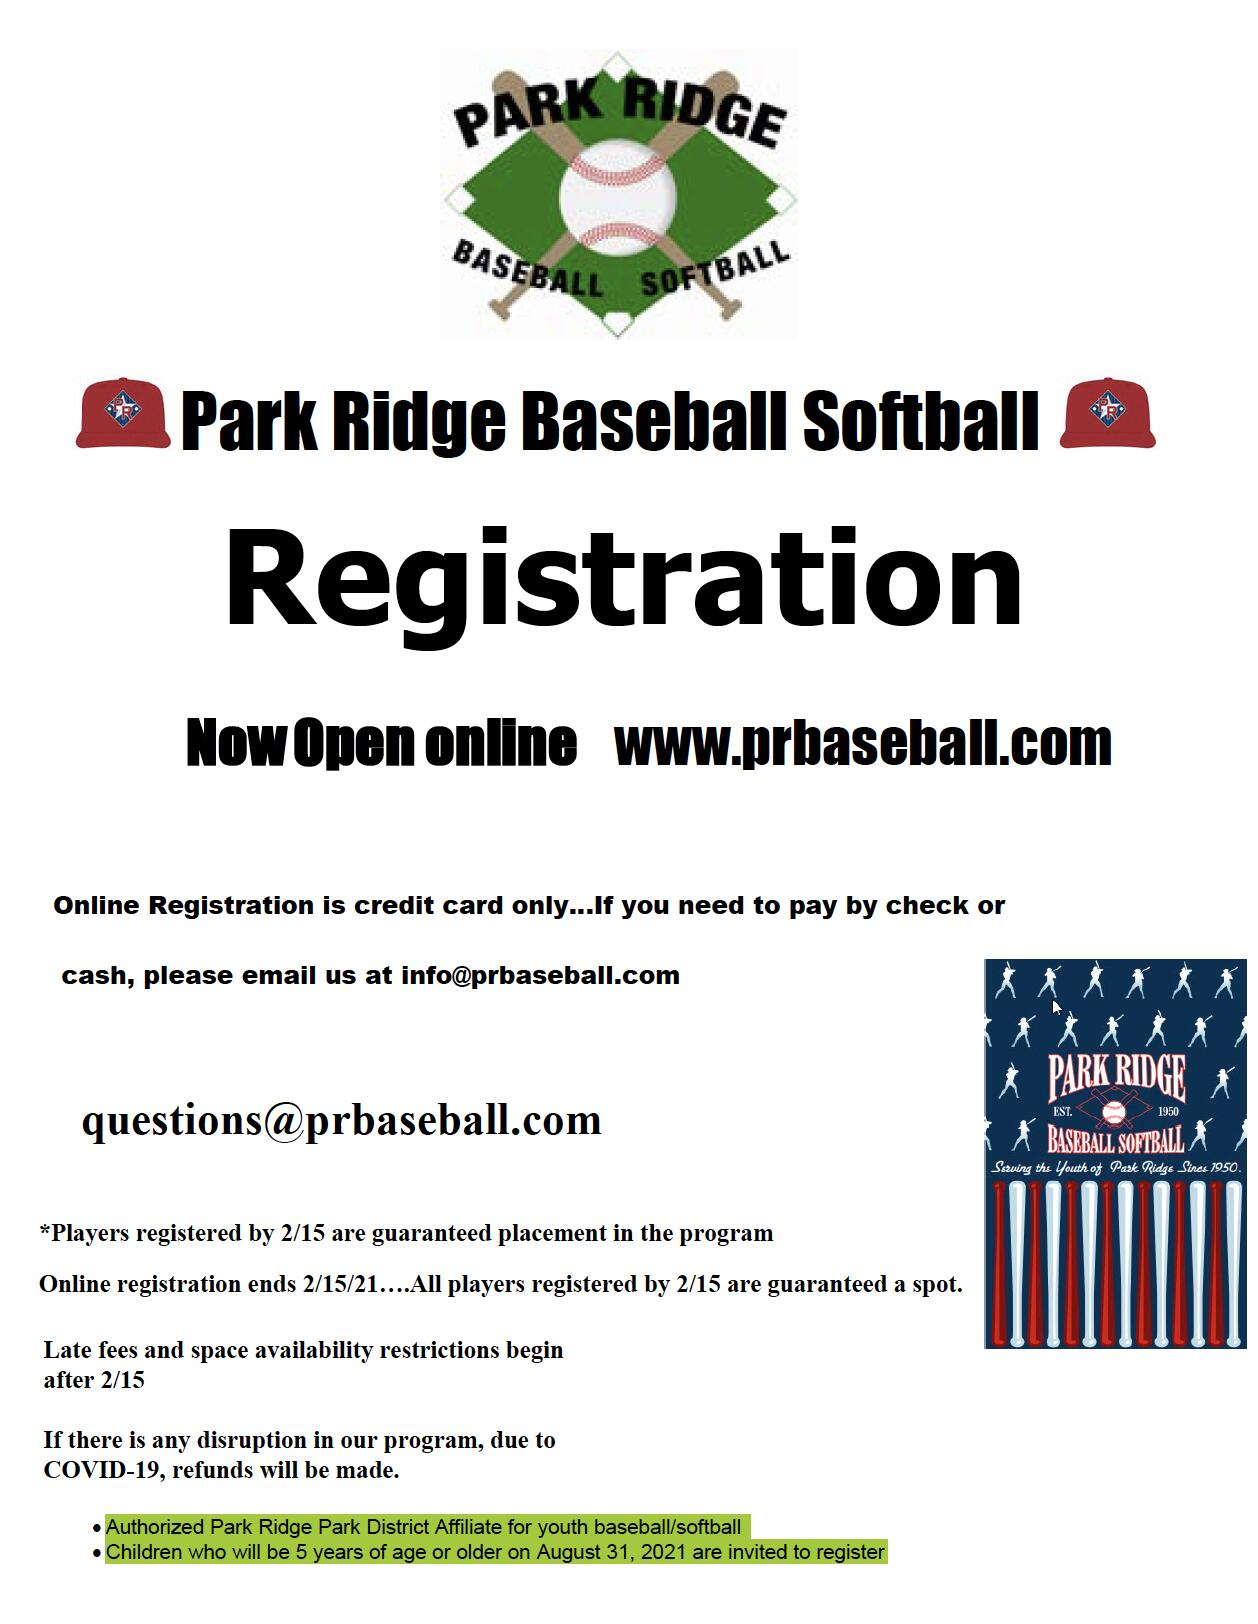 Park Ridge Baseball and Softball Registration